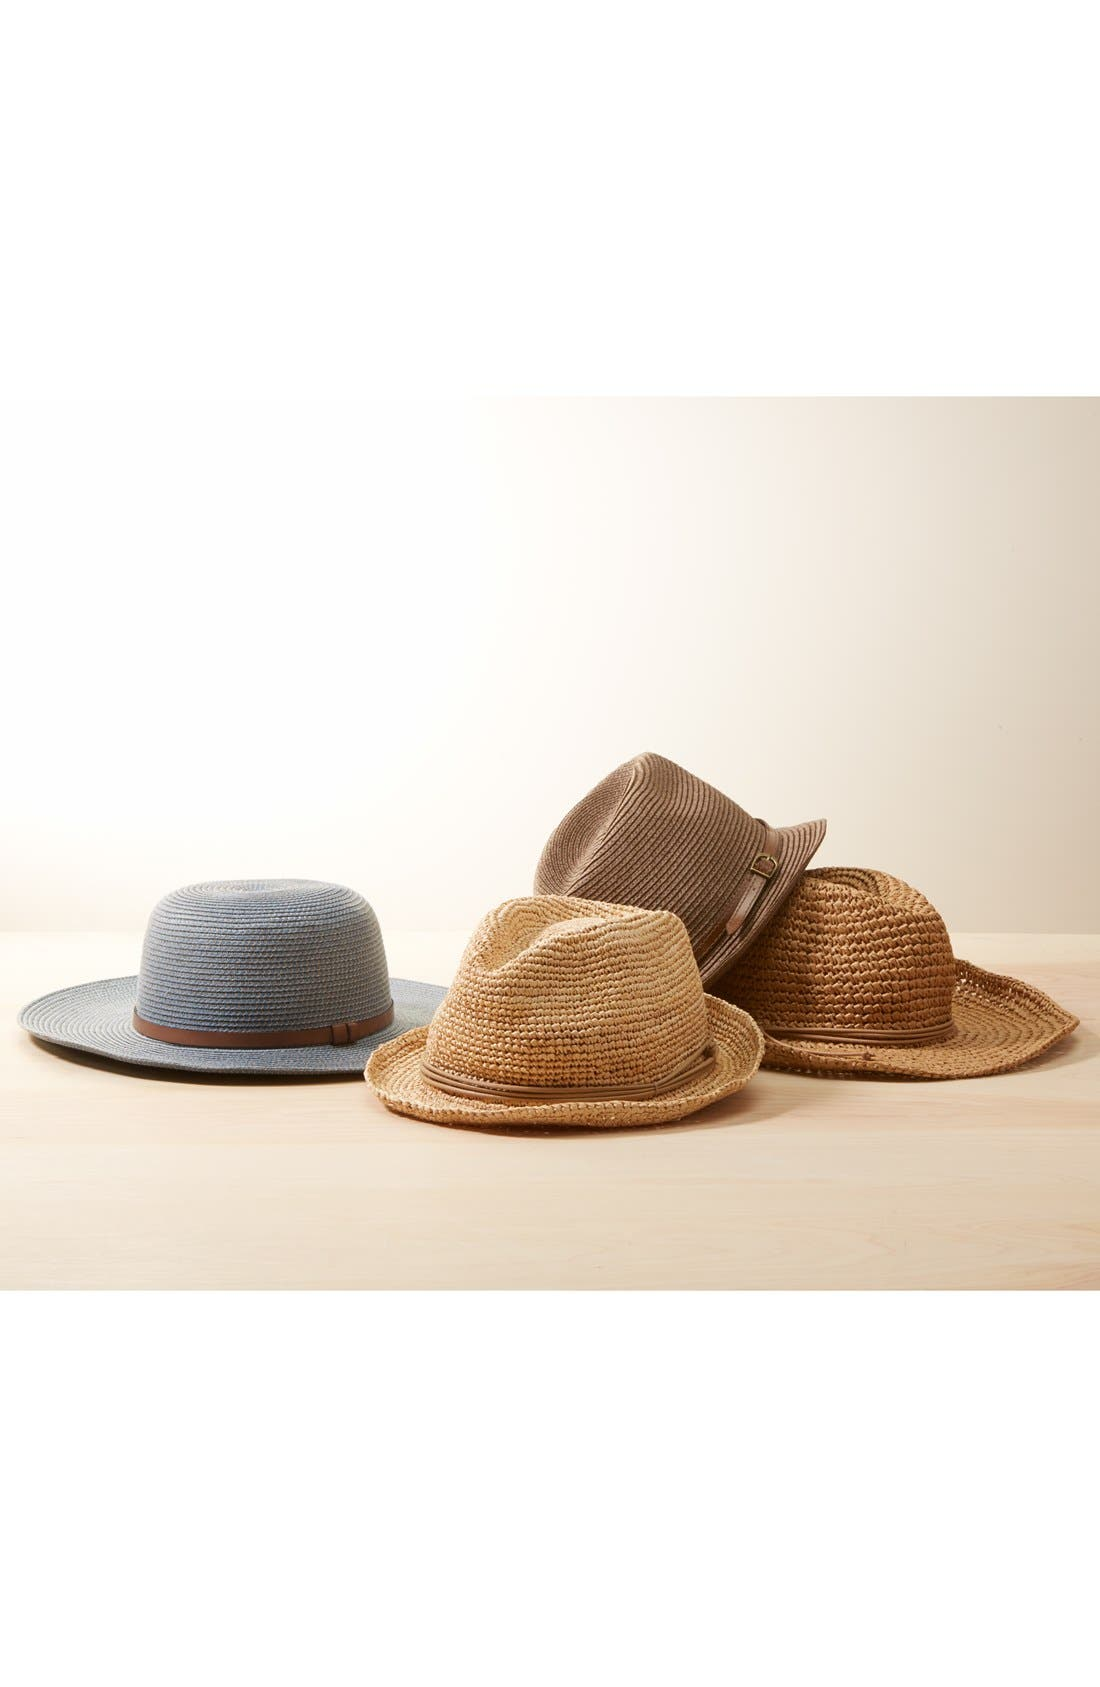 Alternate Image 3  - Nordstrom Straw Floppy Hat